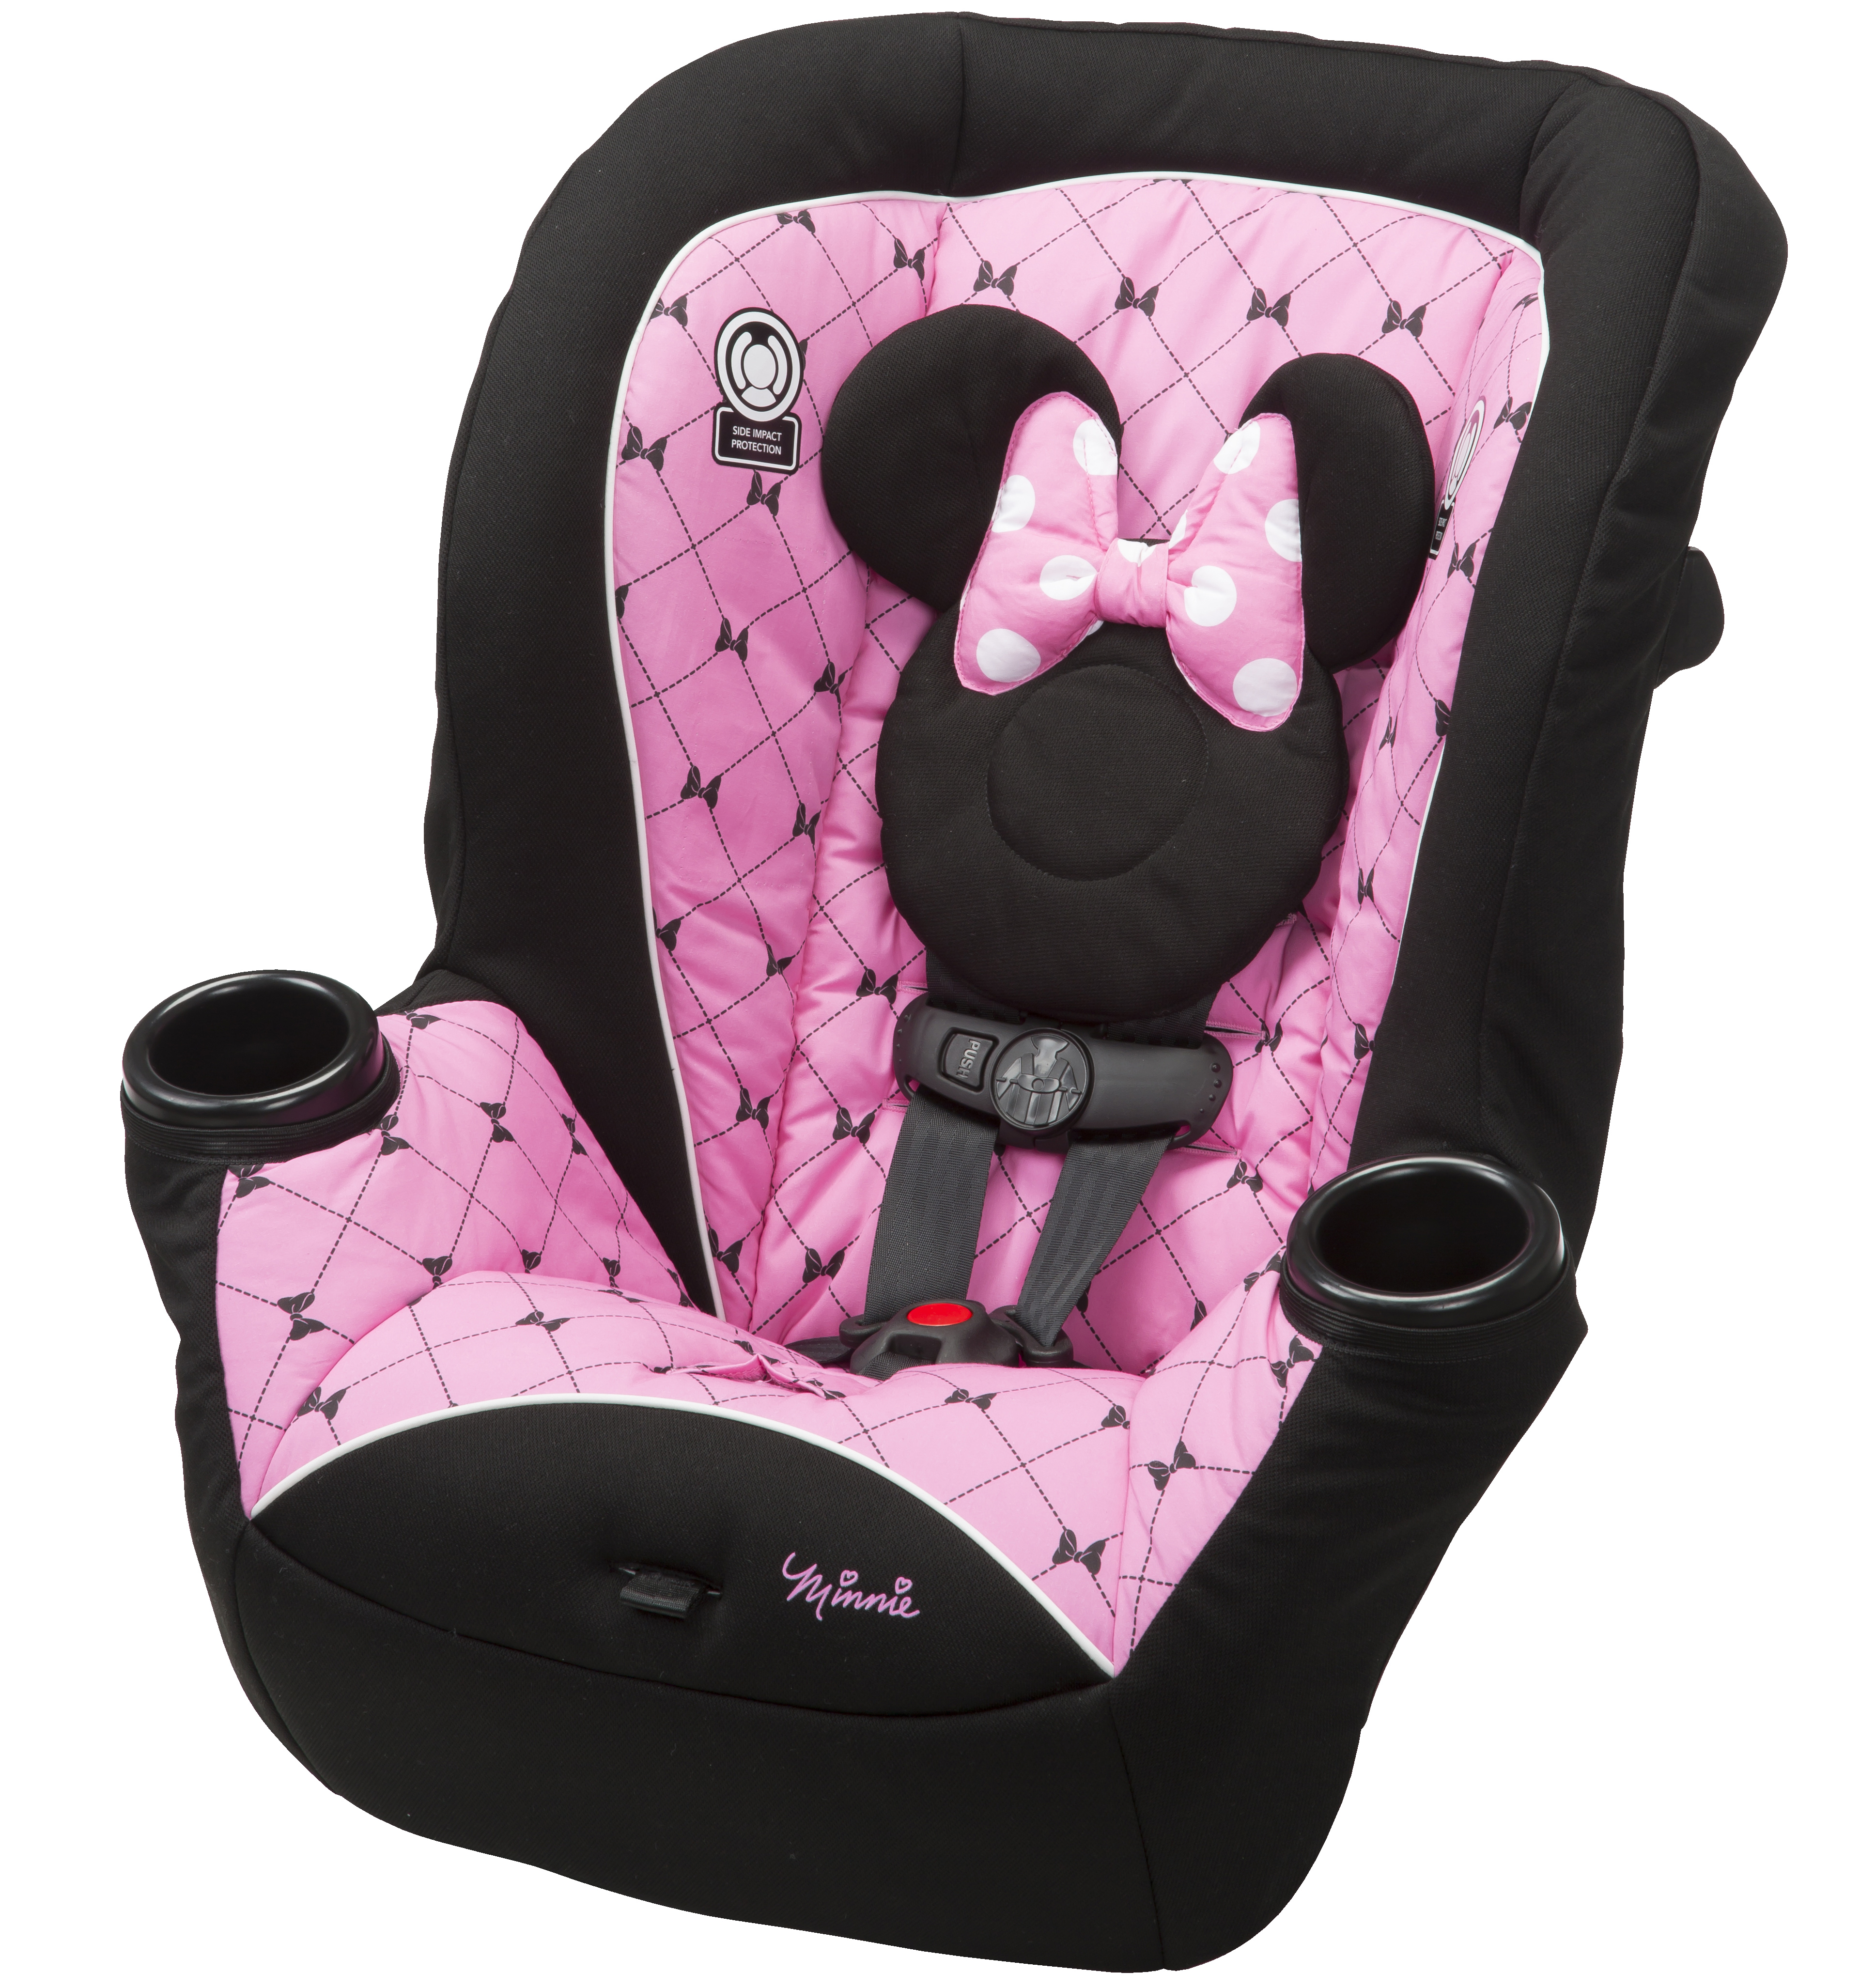 Disney Baby Apt 40RF Convertible Car Seat, Mouseketeer Minnie ...